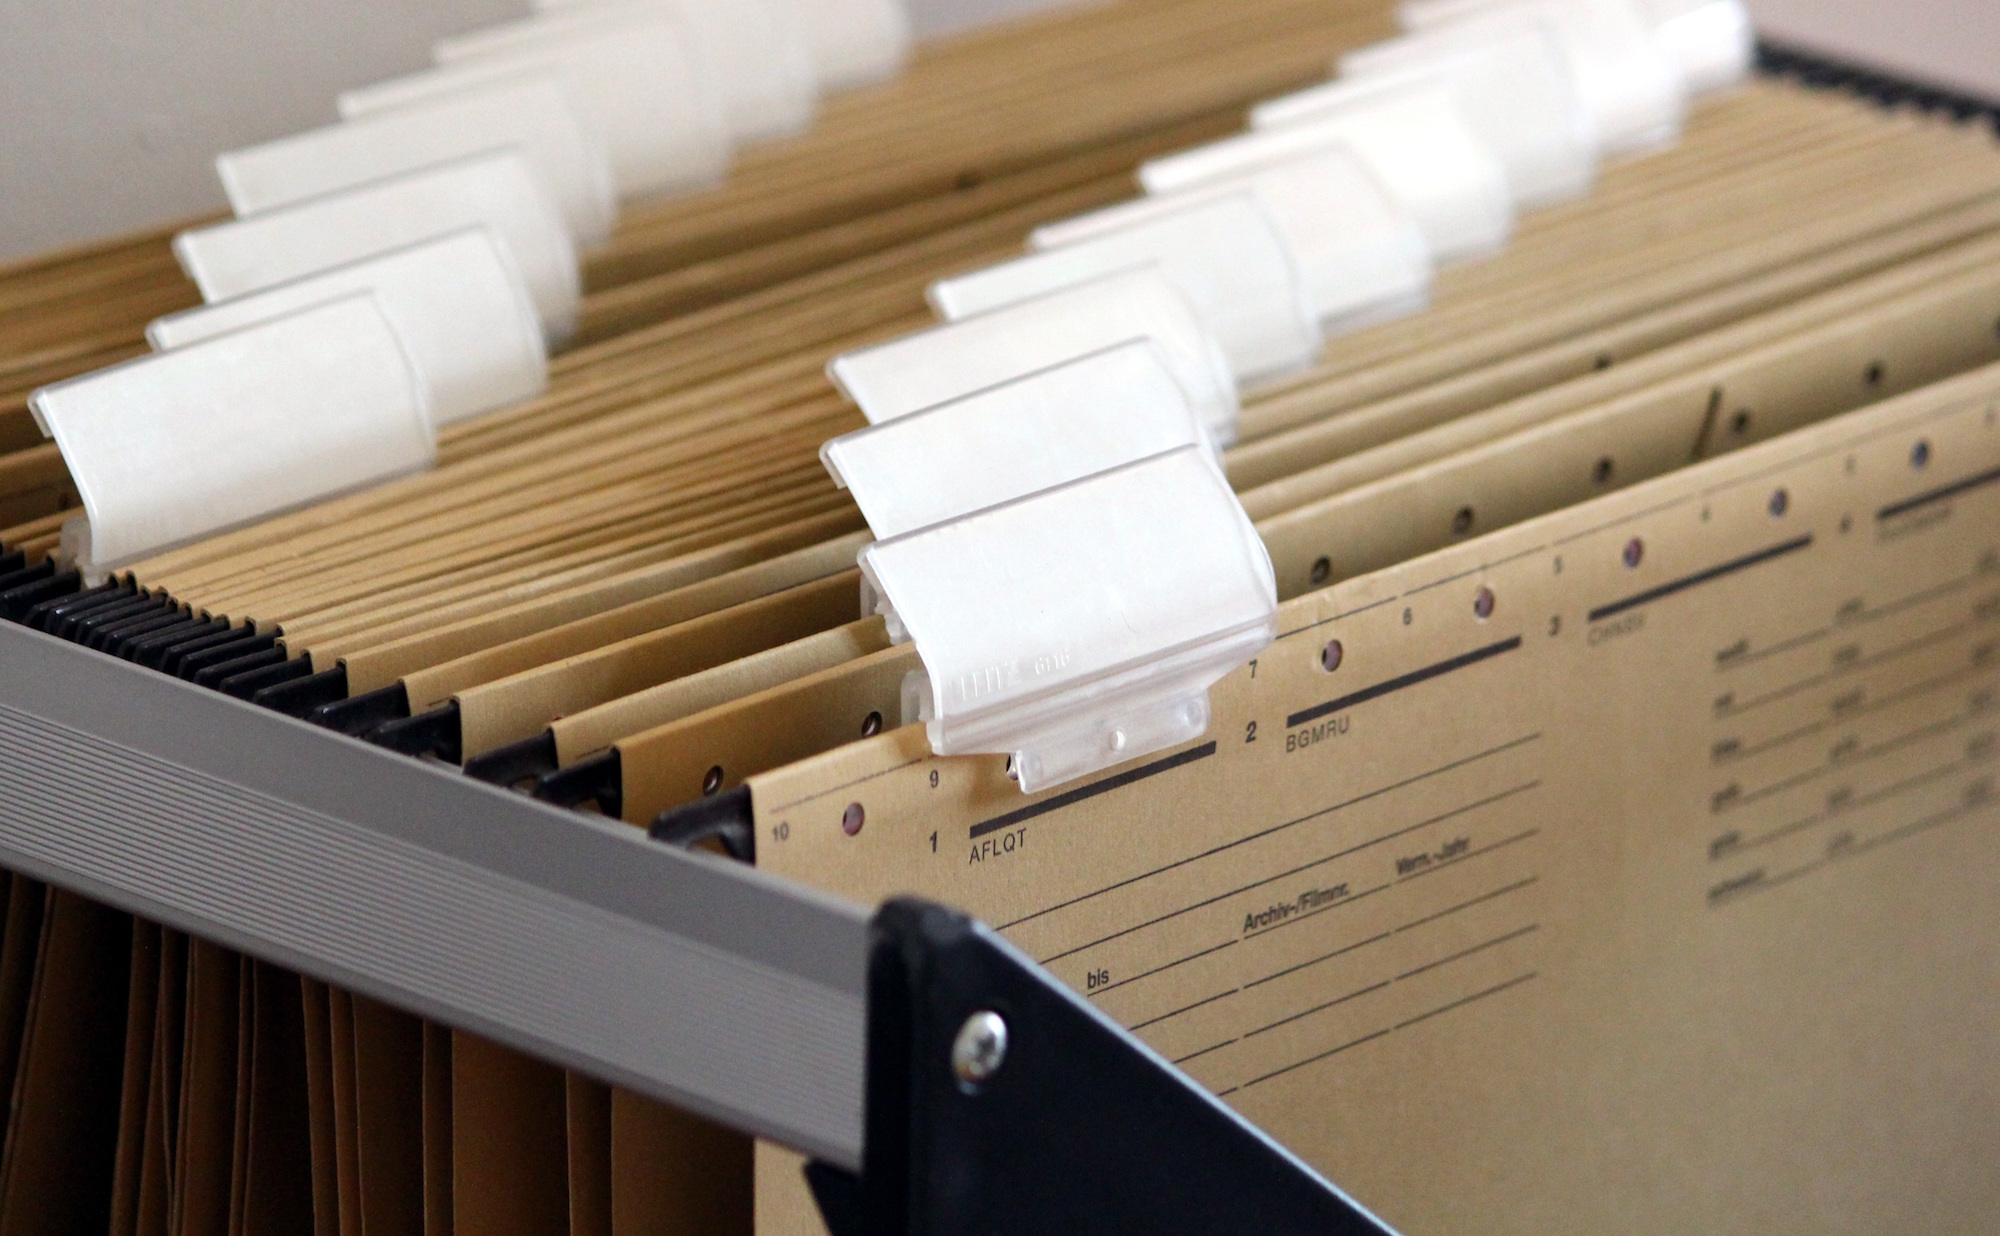 Hanging files in a filing cabinet